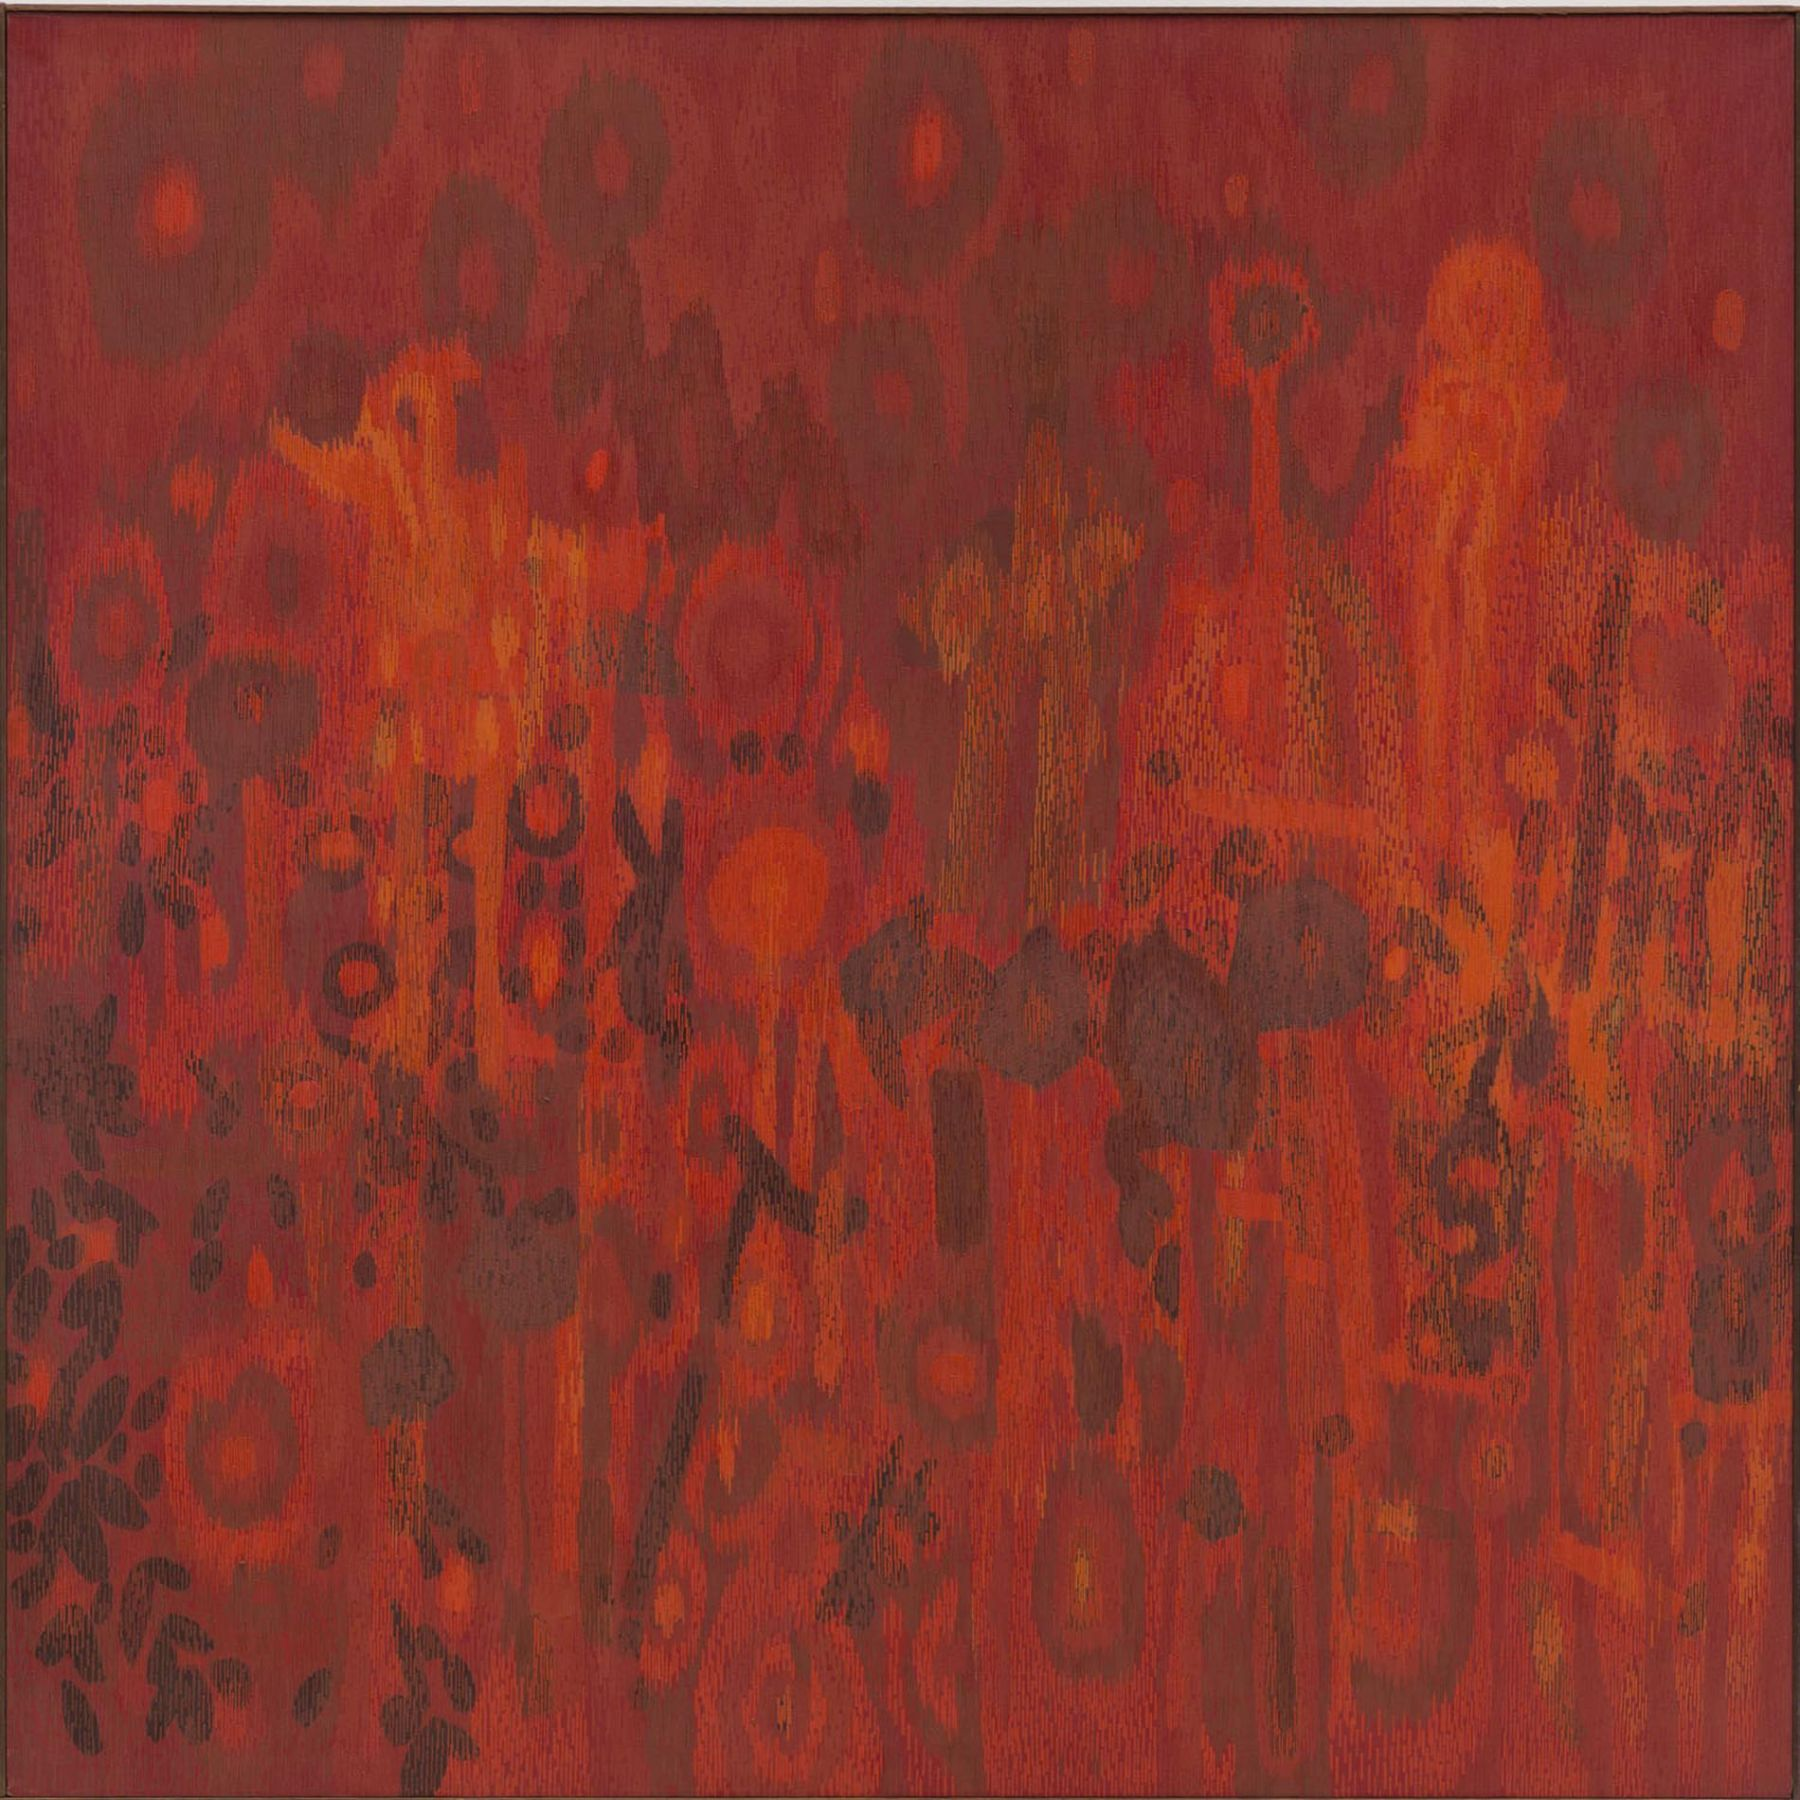 , LEE MULLICAN, Transfigured Night, 1962 , oil on canvas, 75 x 75 in.